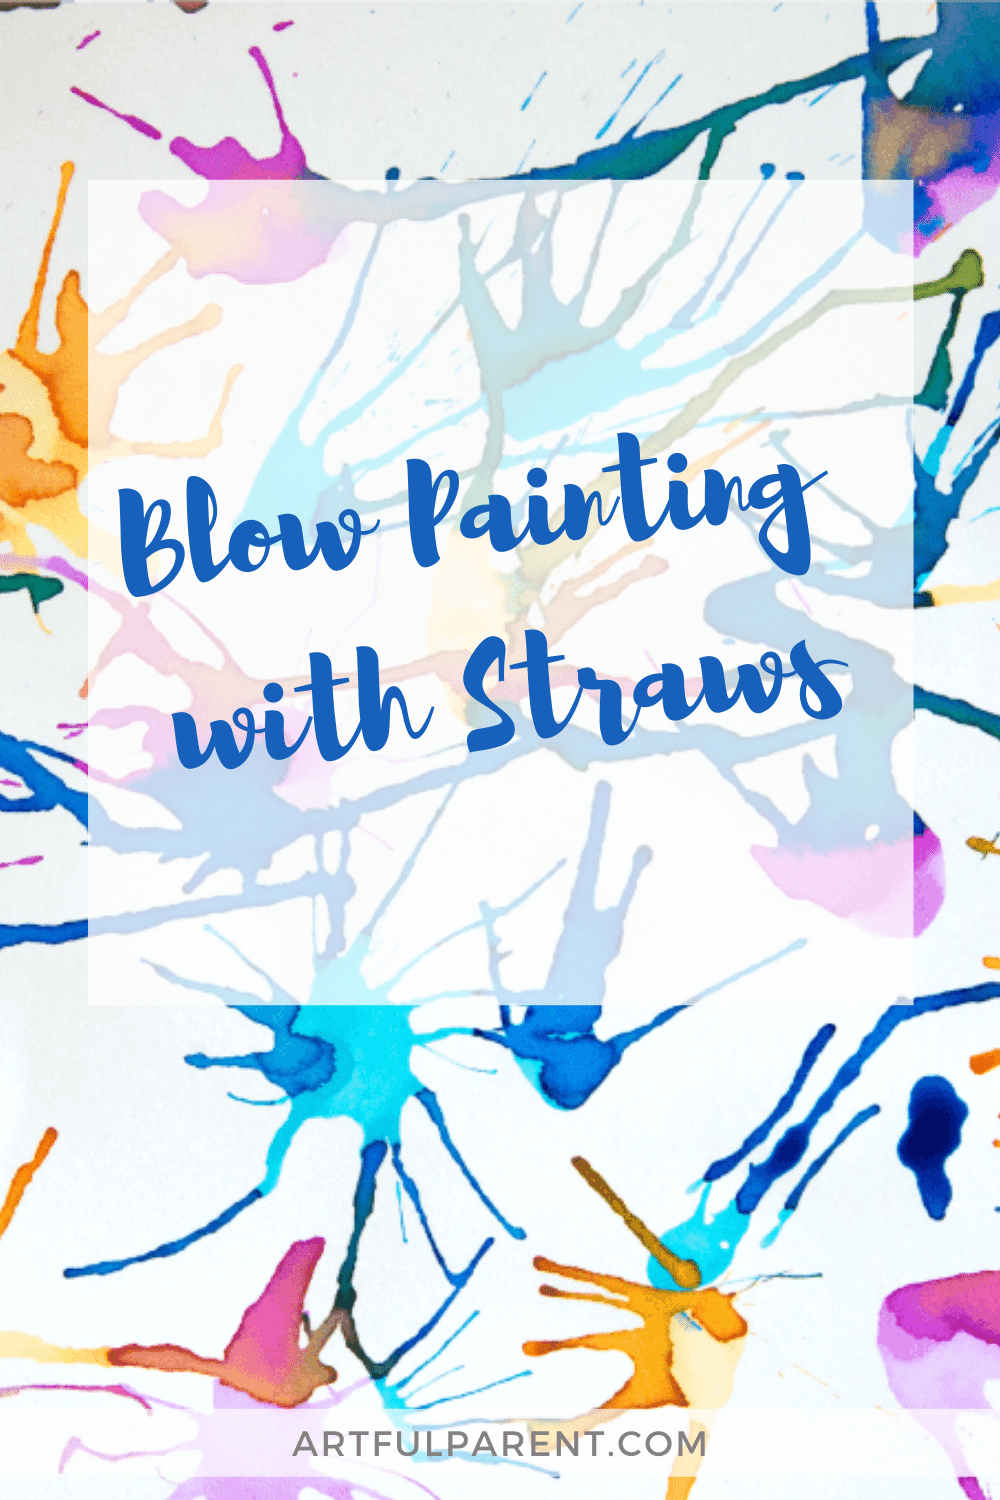 Blow Painting with Straws - pinterest